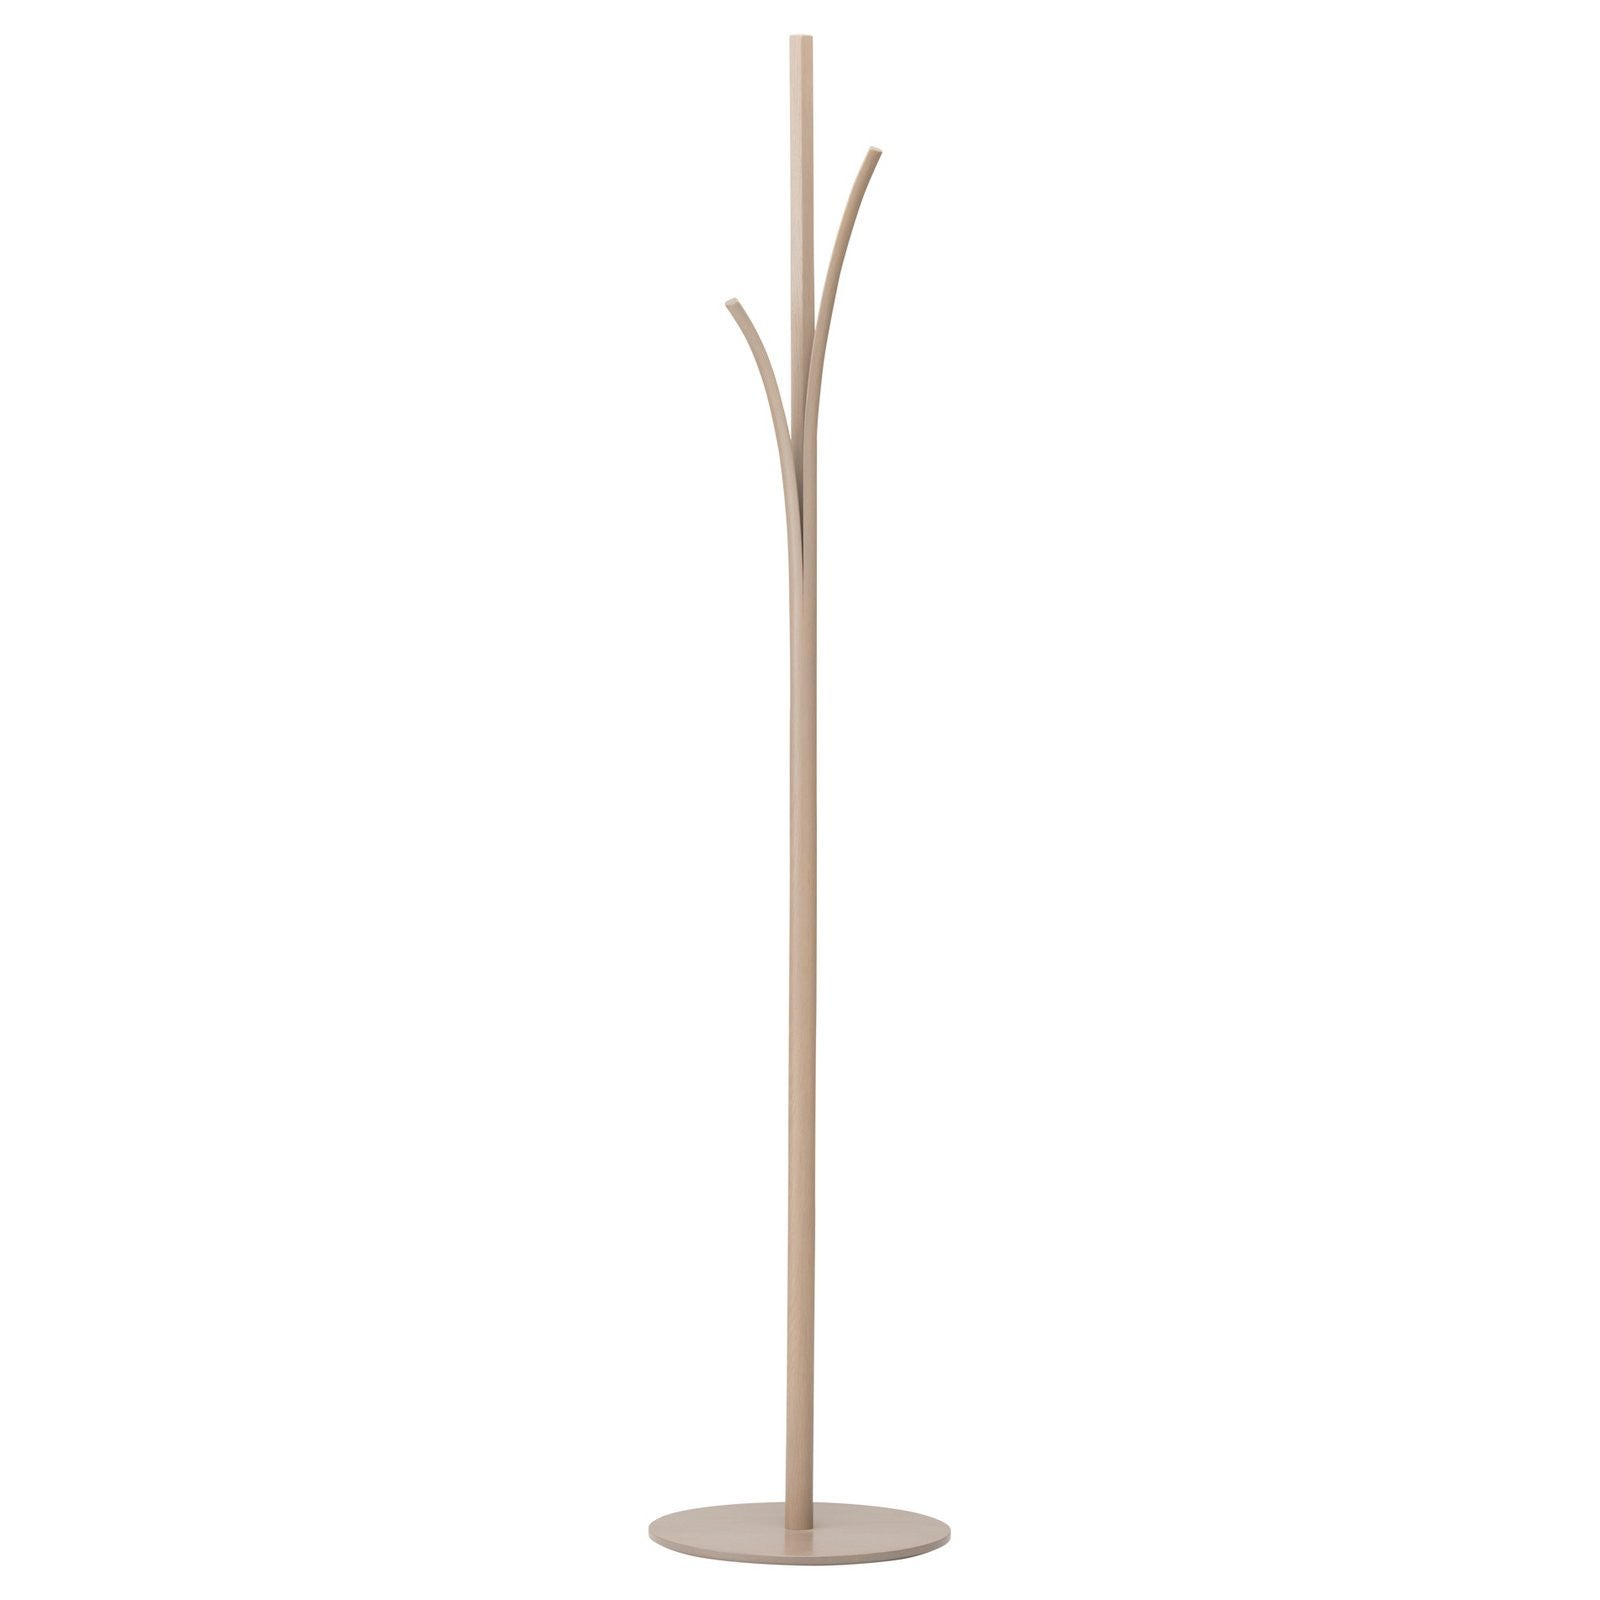 Conde House - Splinter Coat Hanger - Accessories